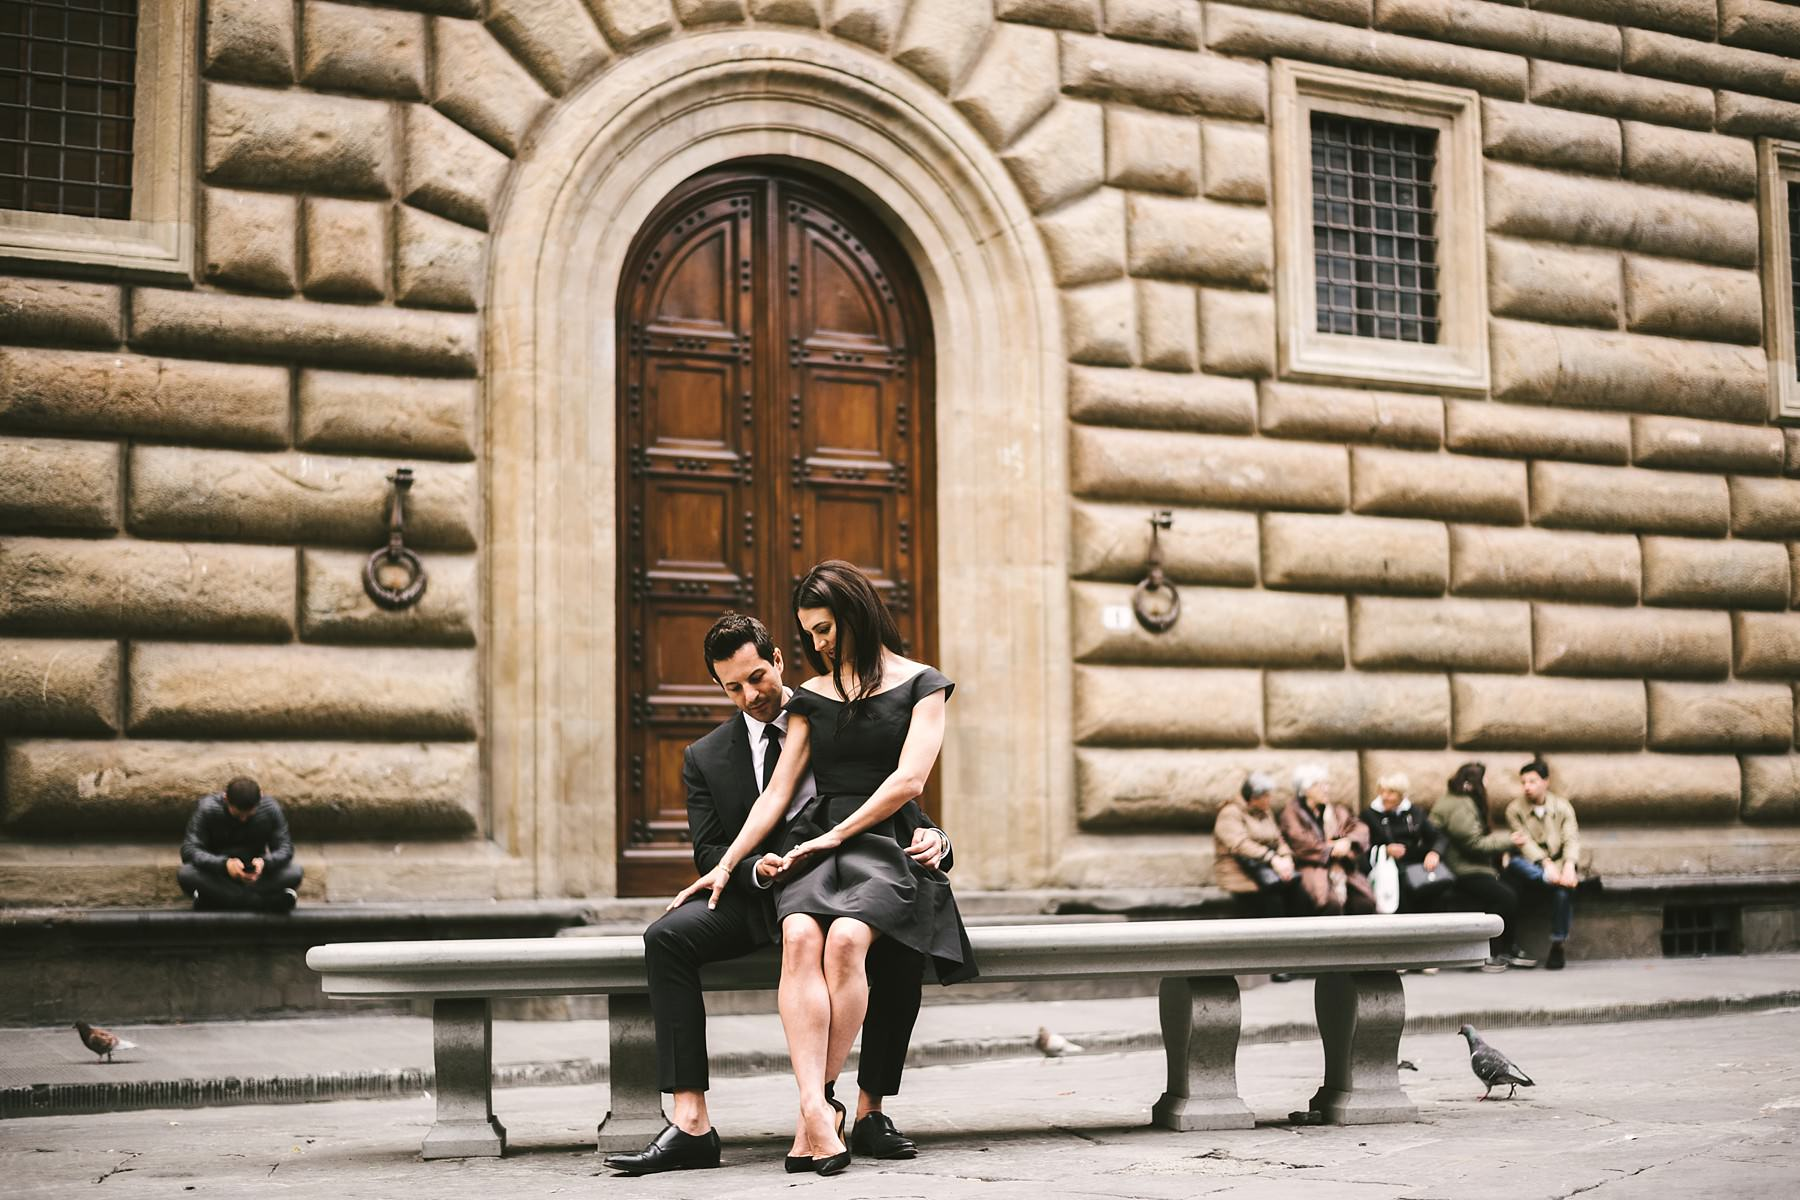 Lovely portrait with the couple seated near Palazzo Gondi and celebrates the love that connects them